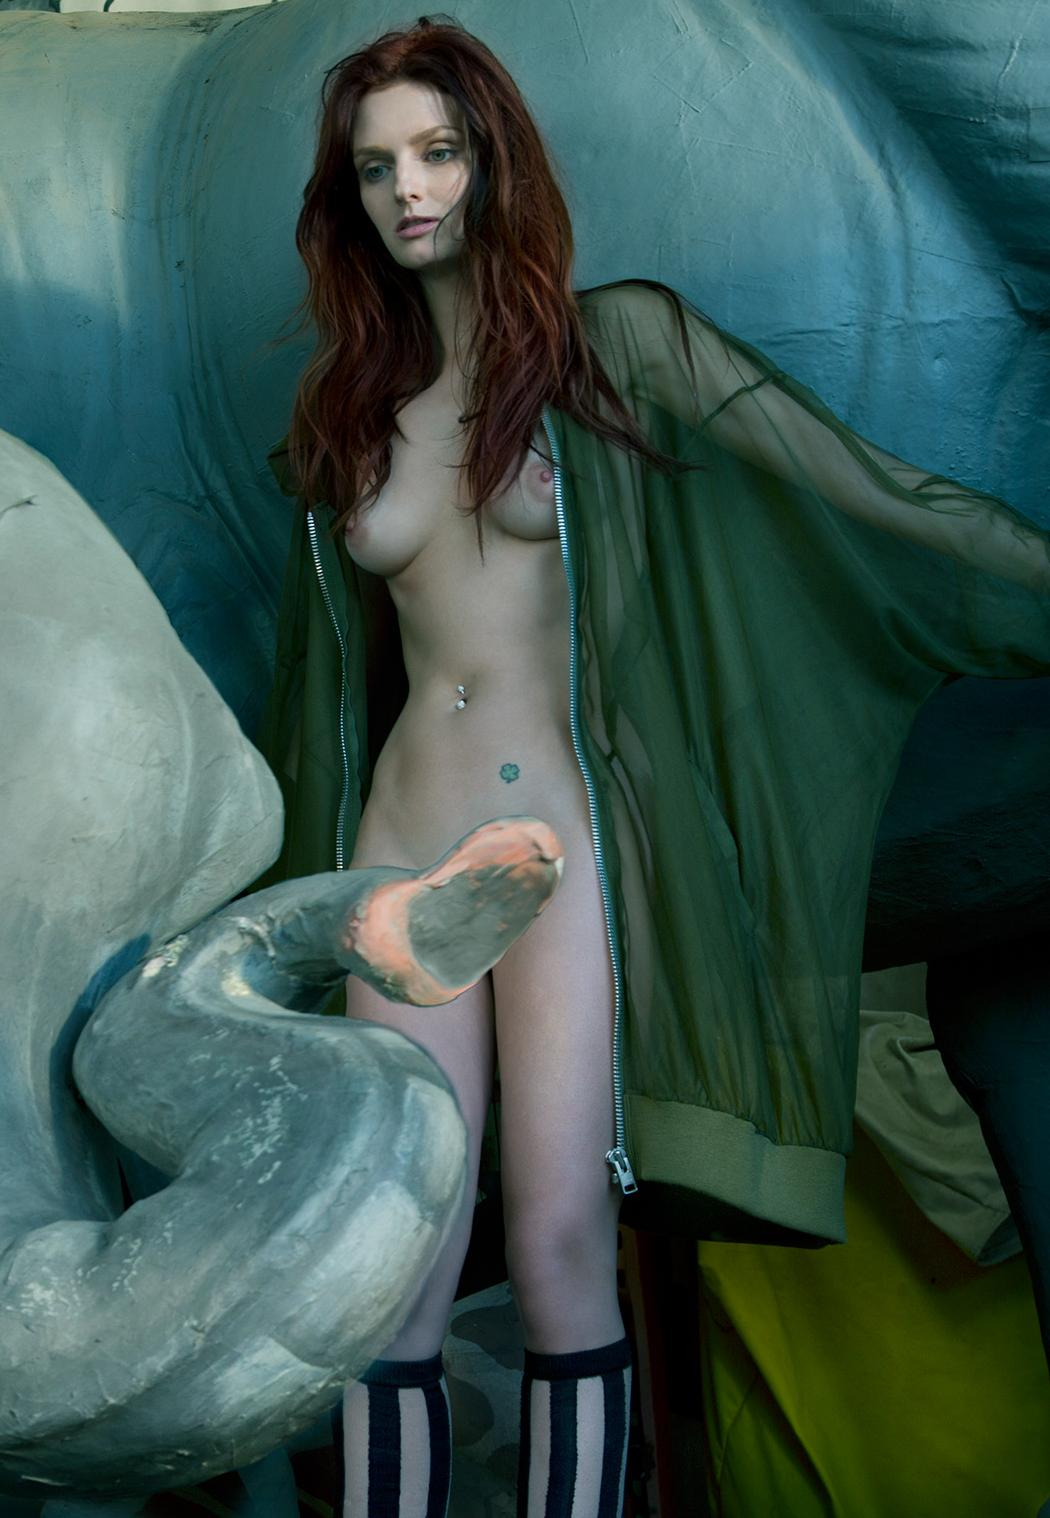 Couple hearst nude picture